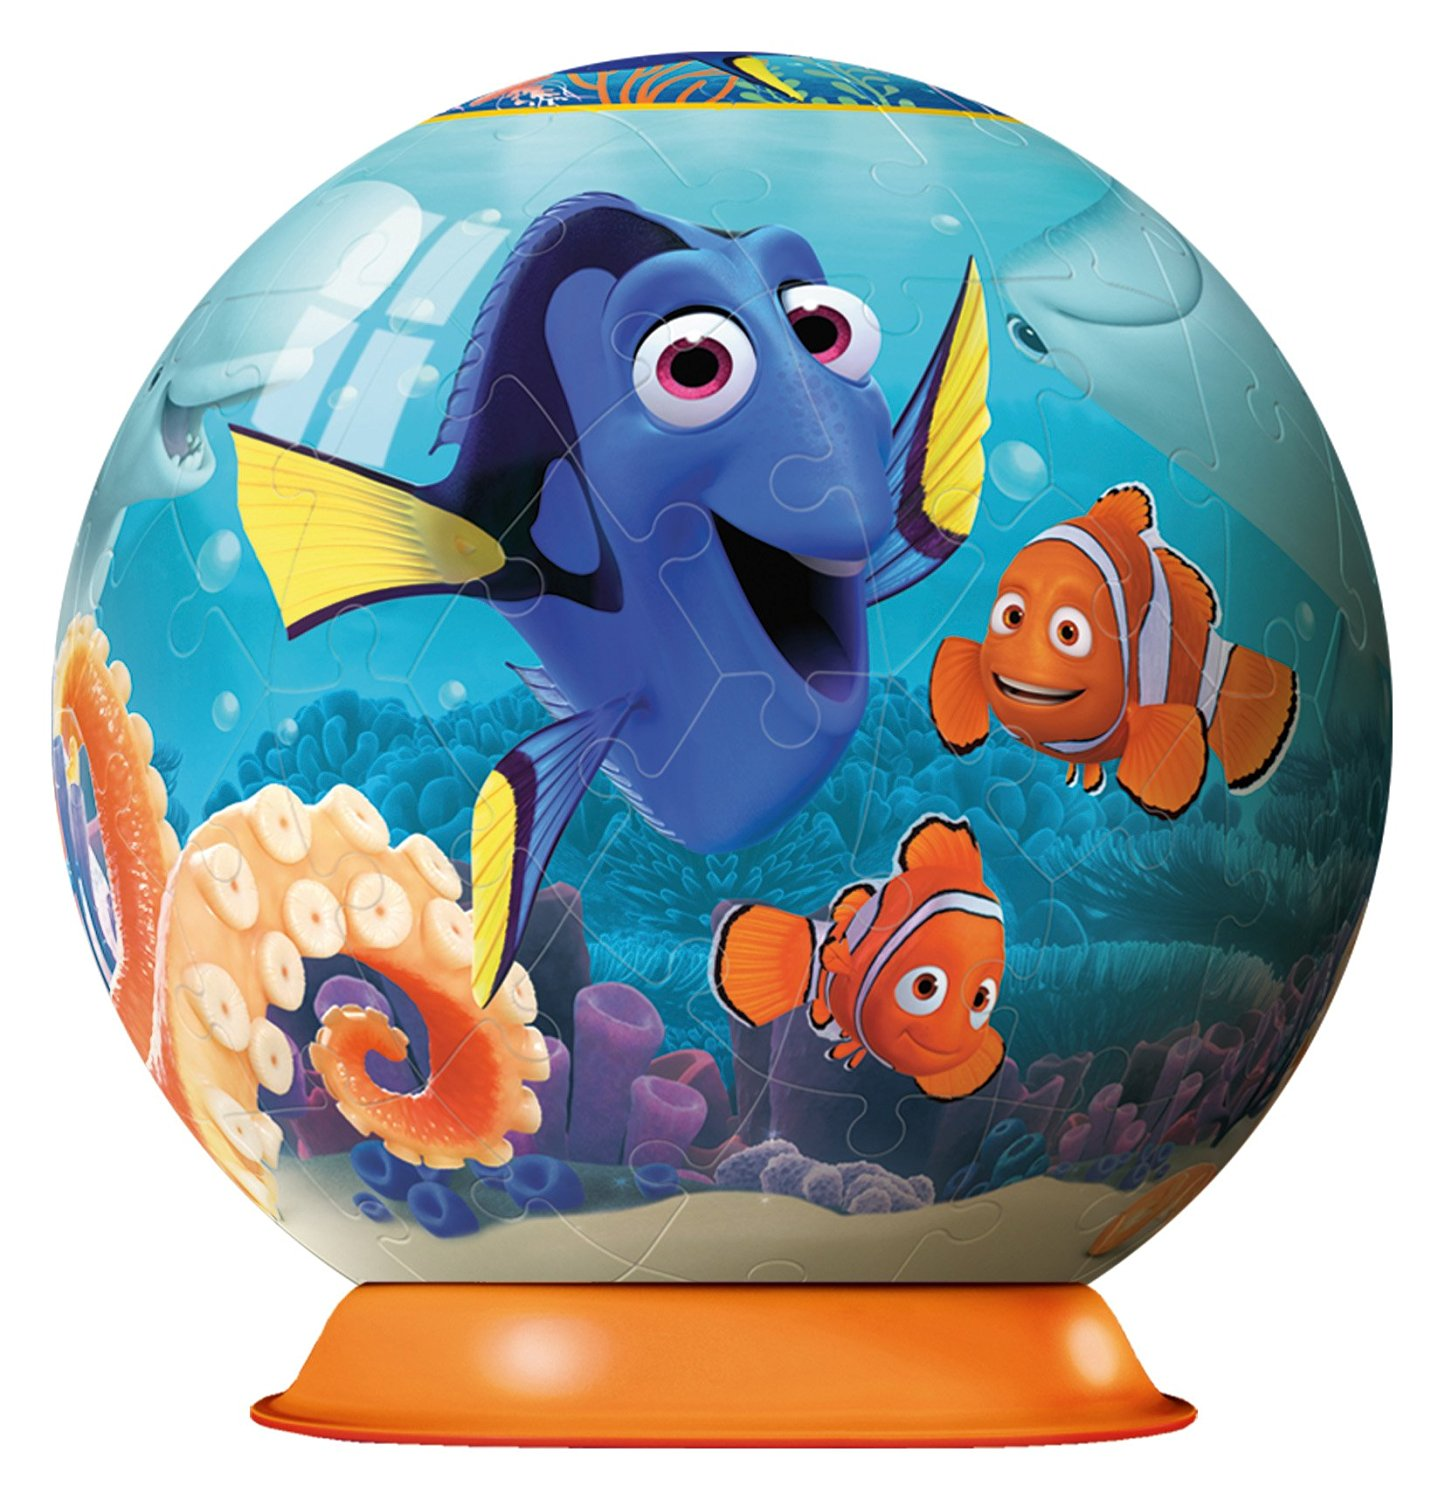 3D Jigsaw Puzzle - Finding Dory Ravensburger-12193 72 ...